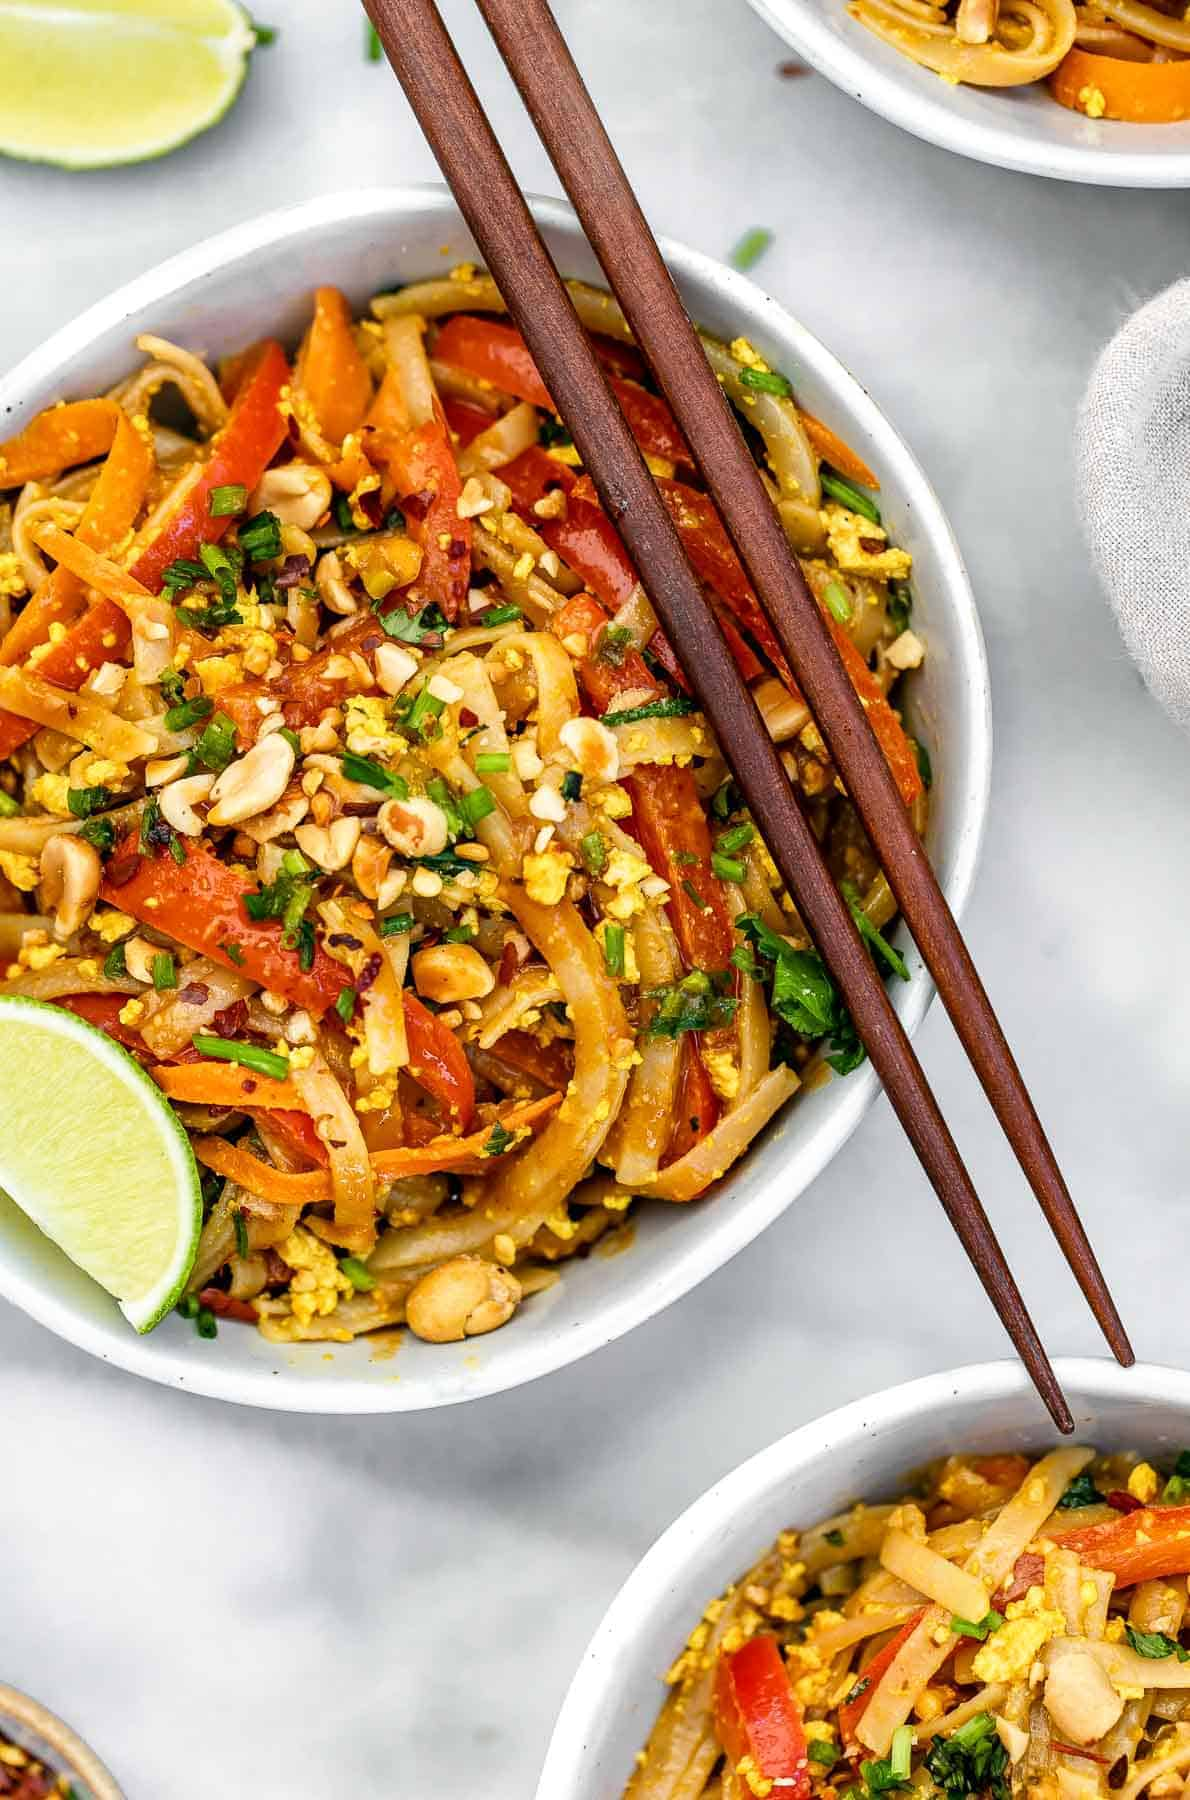 Final pad thai in a bowl with chopsticks and peanuts.